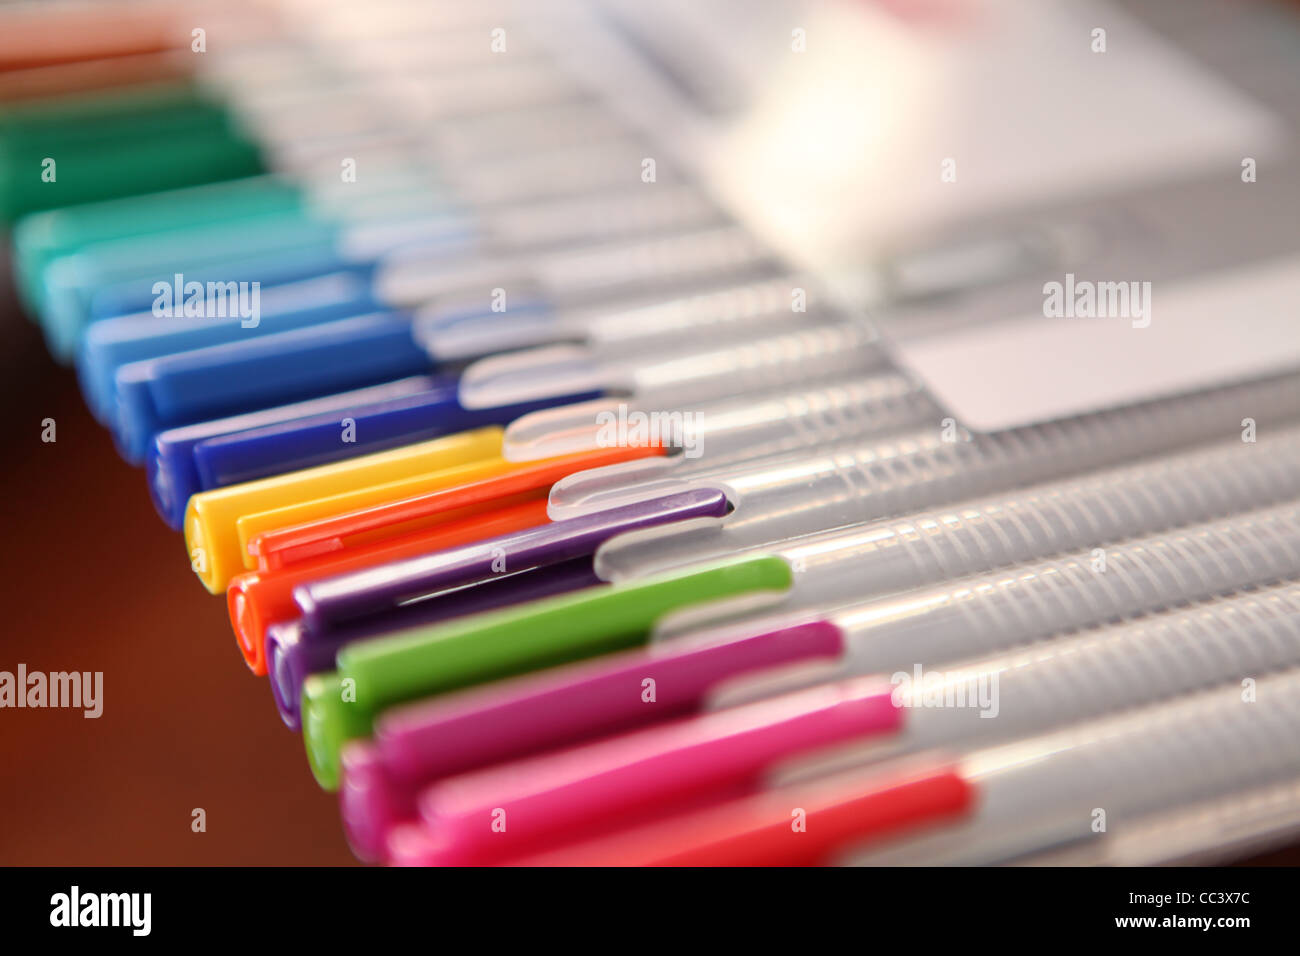 ROW OF COLOURED ARCHITECTS PENS - Stock Image